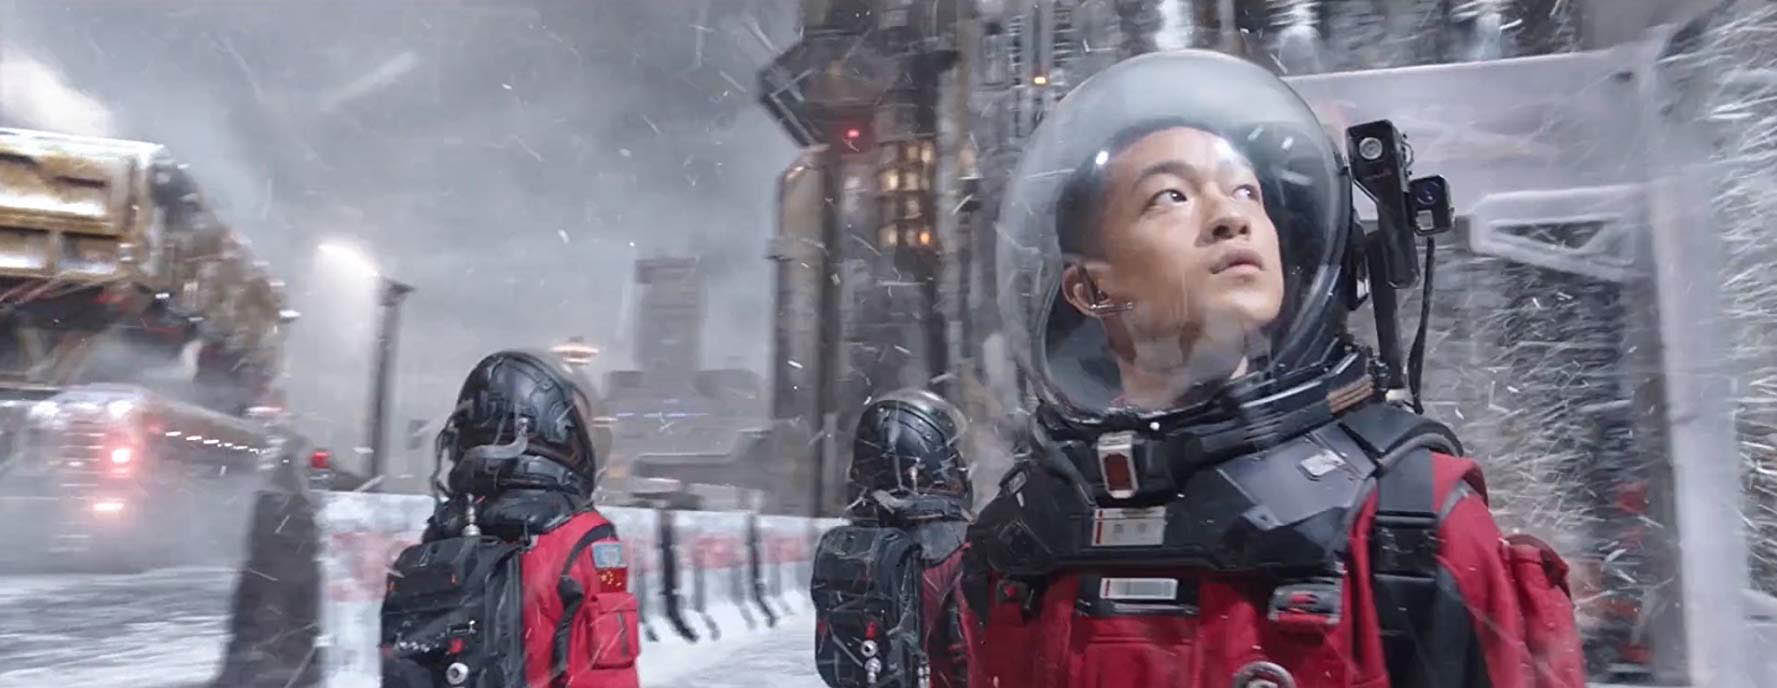 The Wandering Earth - Official Images - 01